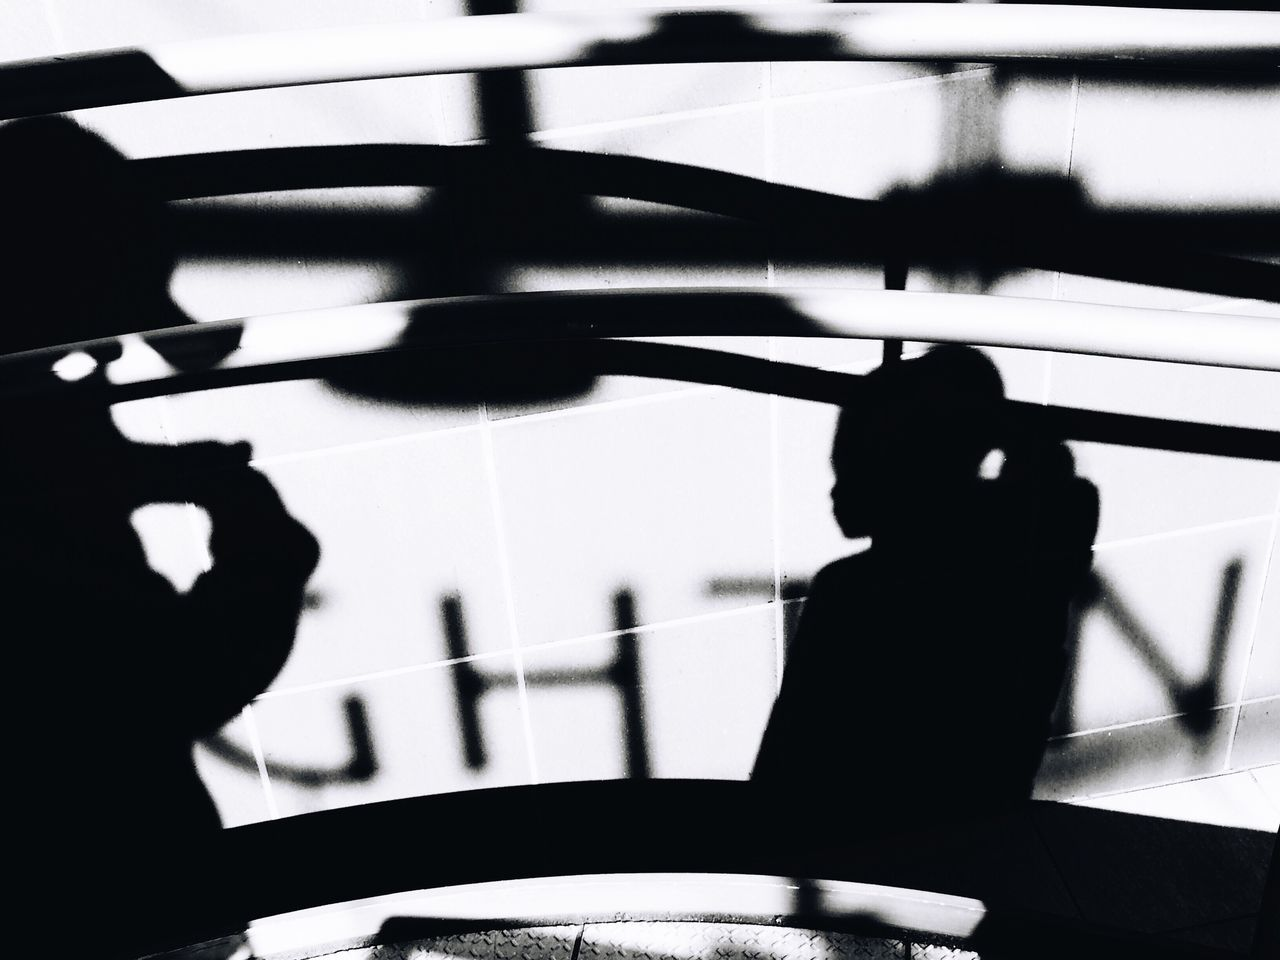 indoors, music, close-up, silhouette, no people, musical instrument, technology, day